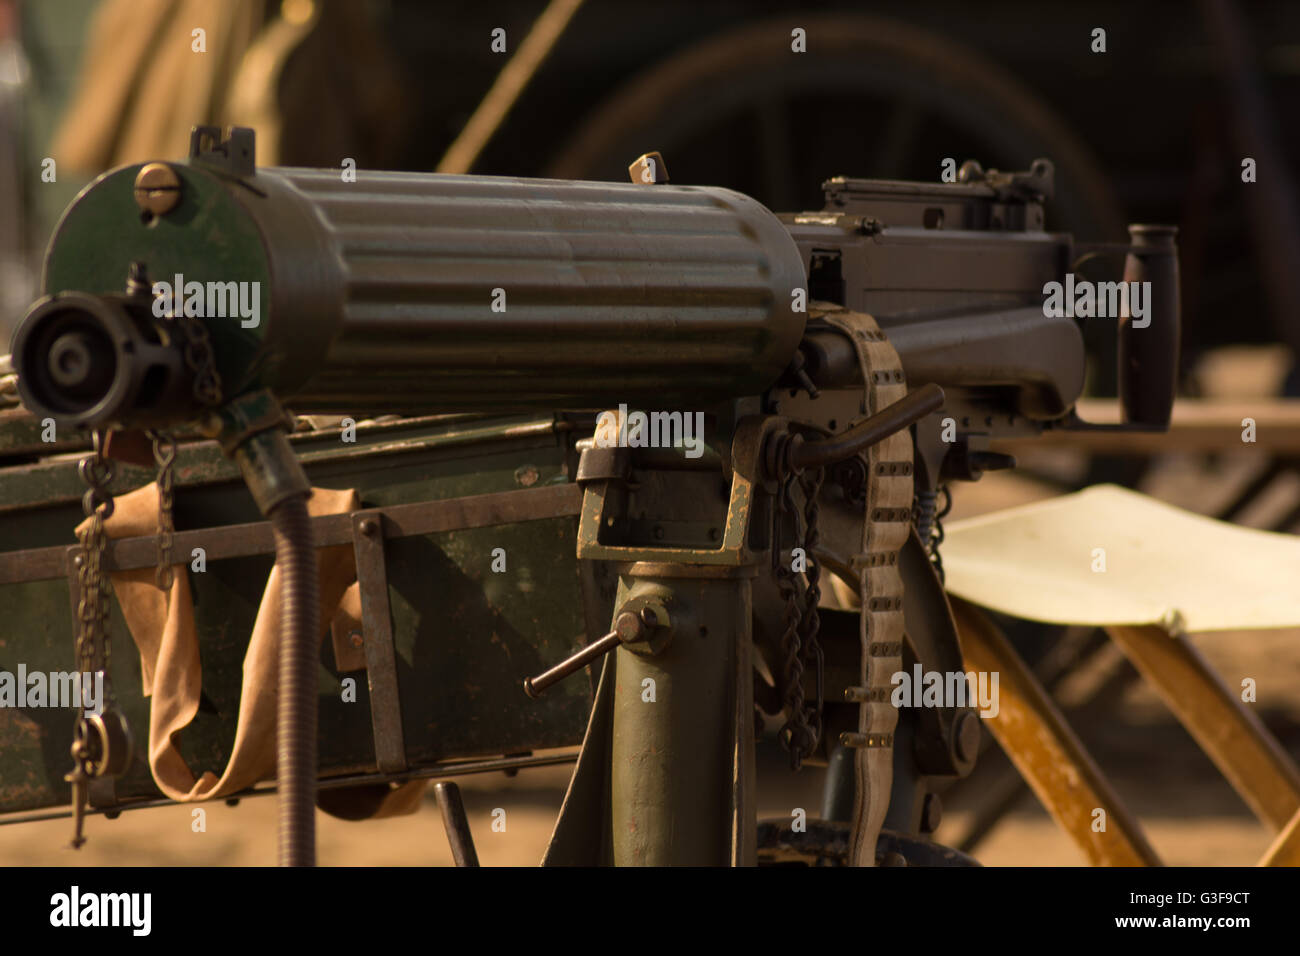 Maxim Machine Gun Stock Photos & Maxim Machine Gun Stock Images - Alamy